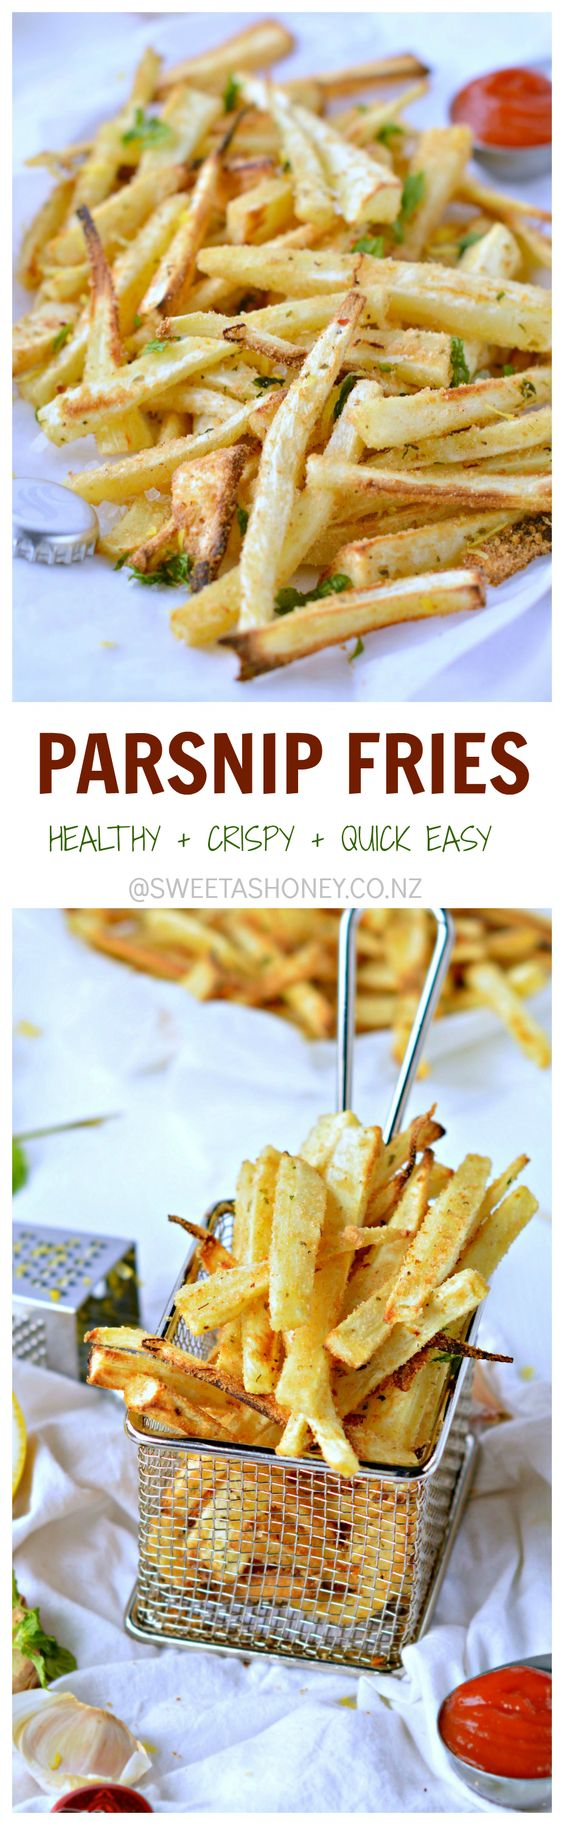 ... fries | low carb fries | low calorie fries | oven fries | gluten free